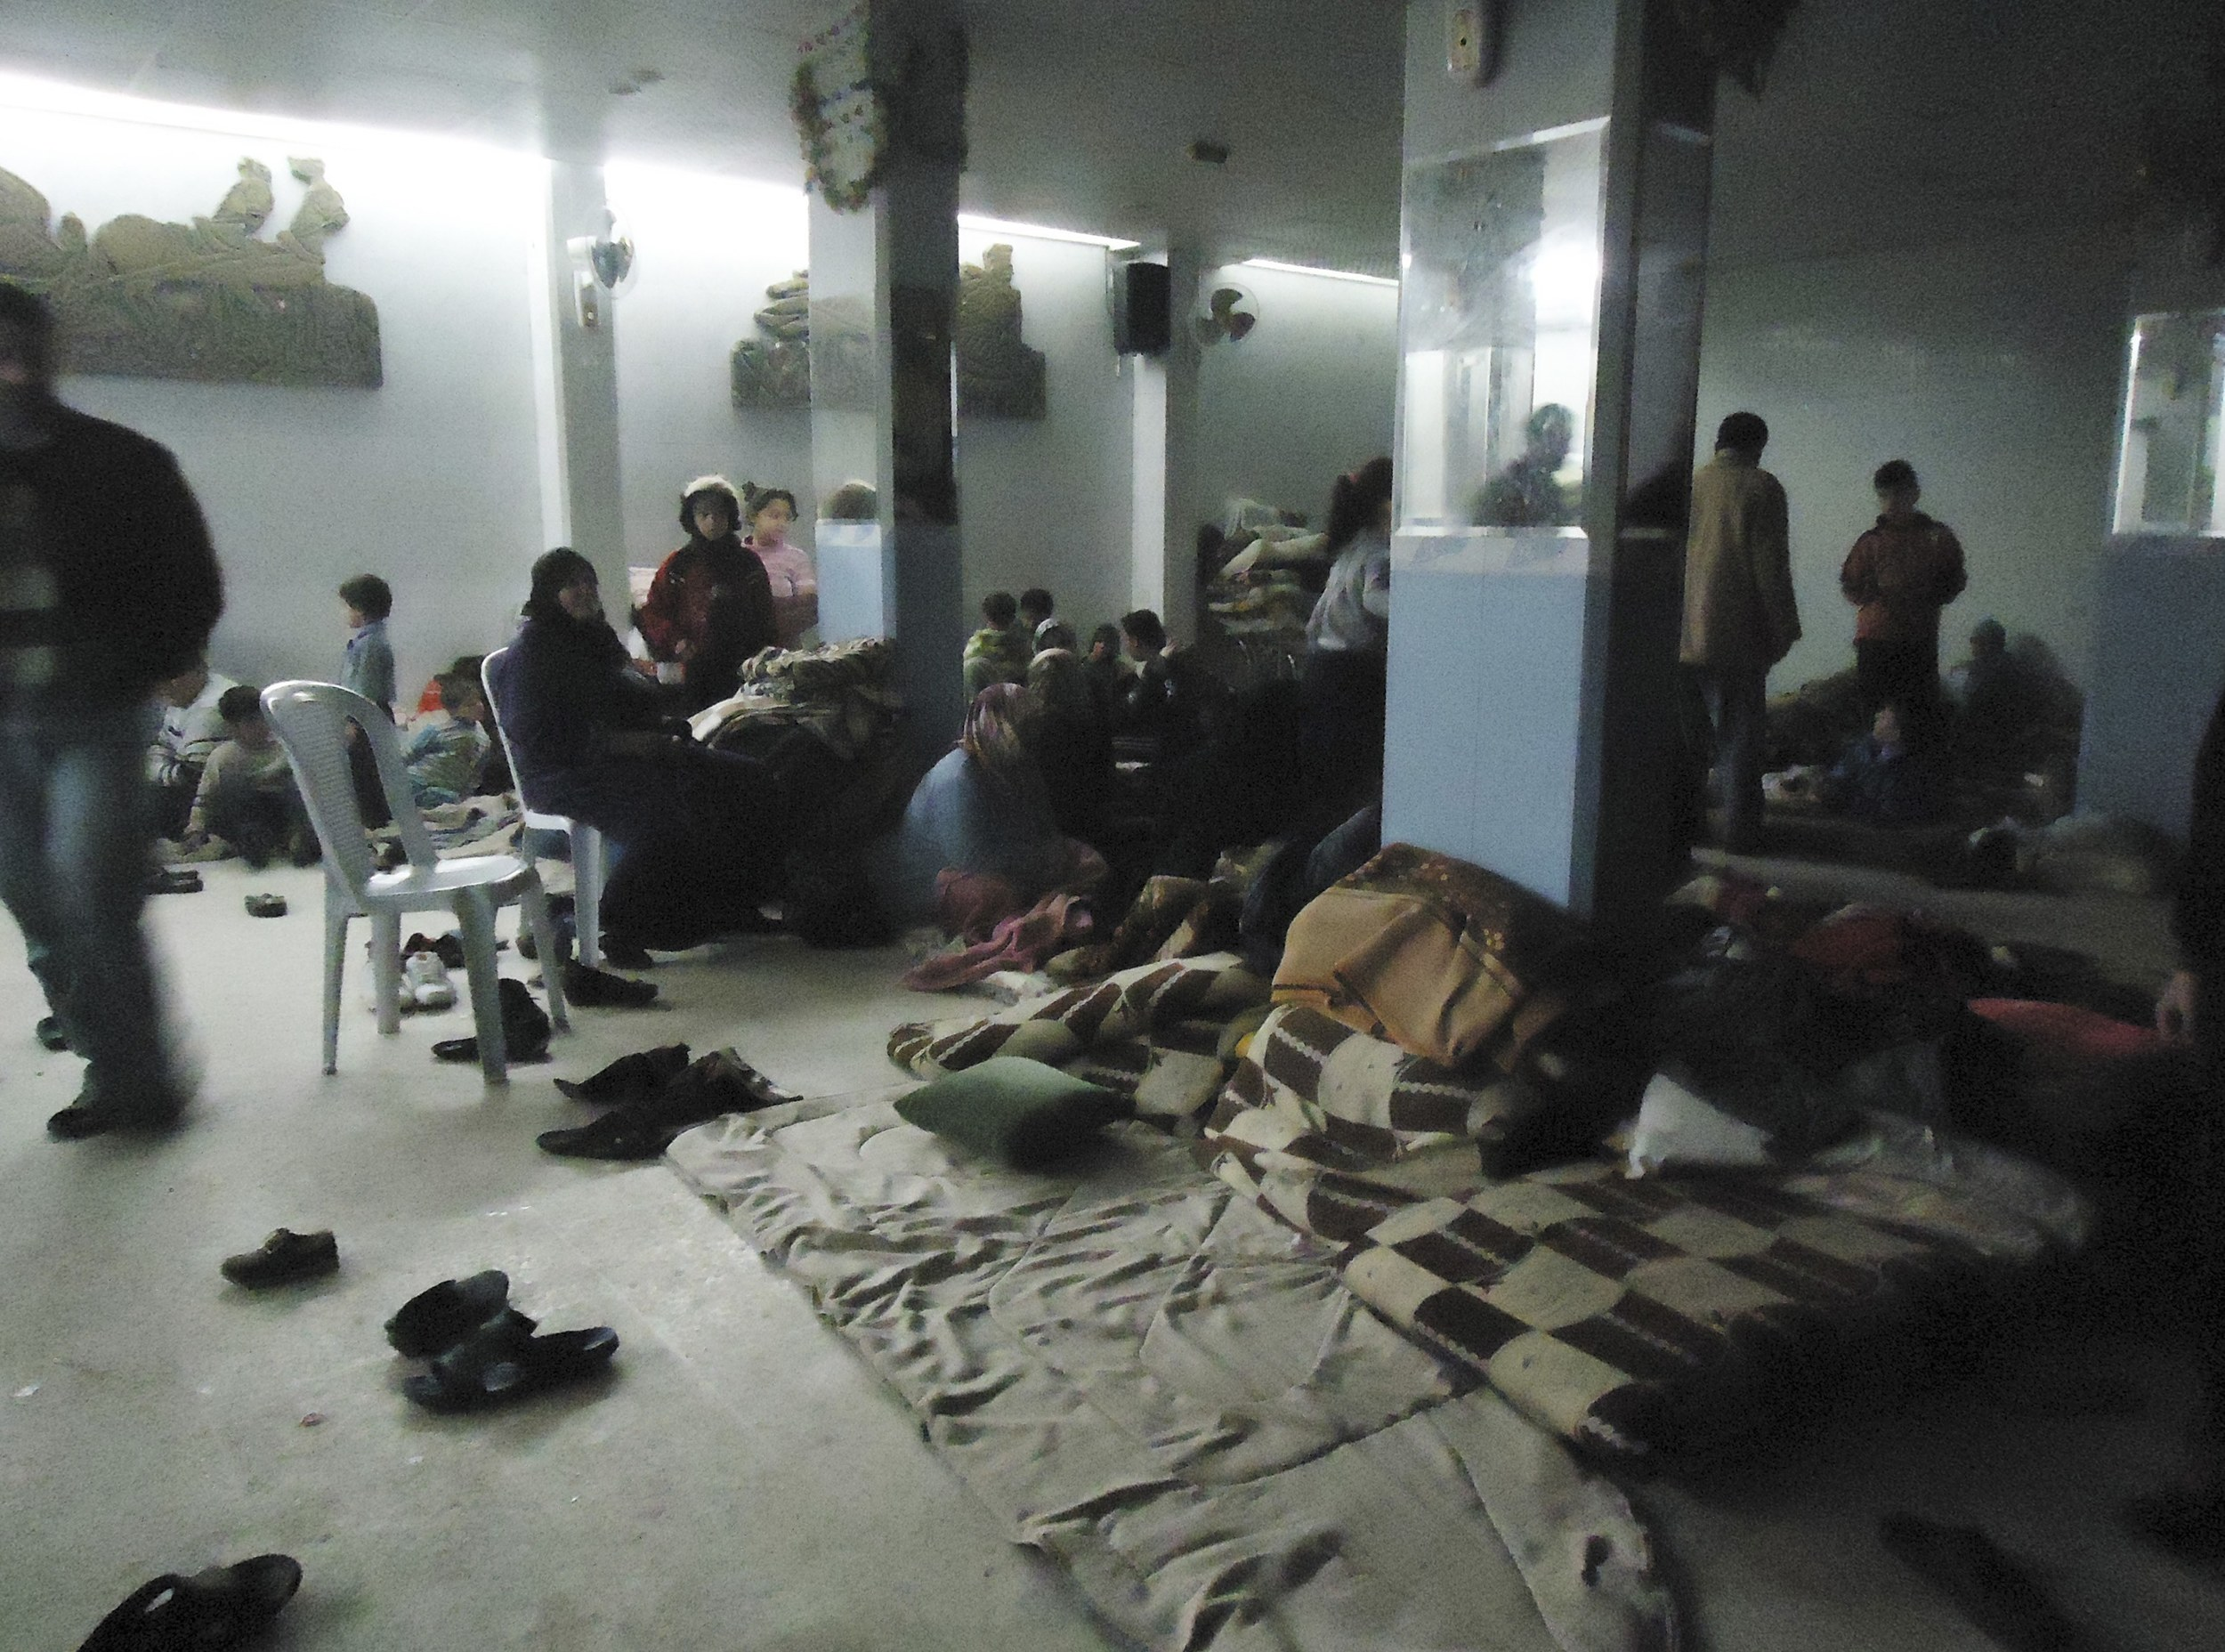 Syrian civilians bear brunt of violence - Shelter in Baba Amro, near Homs Photo courtesy of Reuters/Mulham Alnader